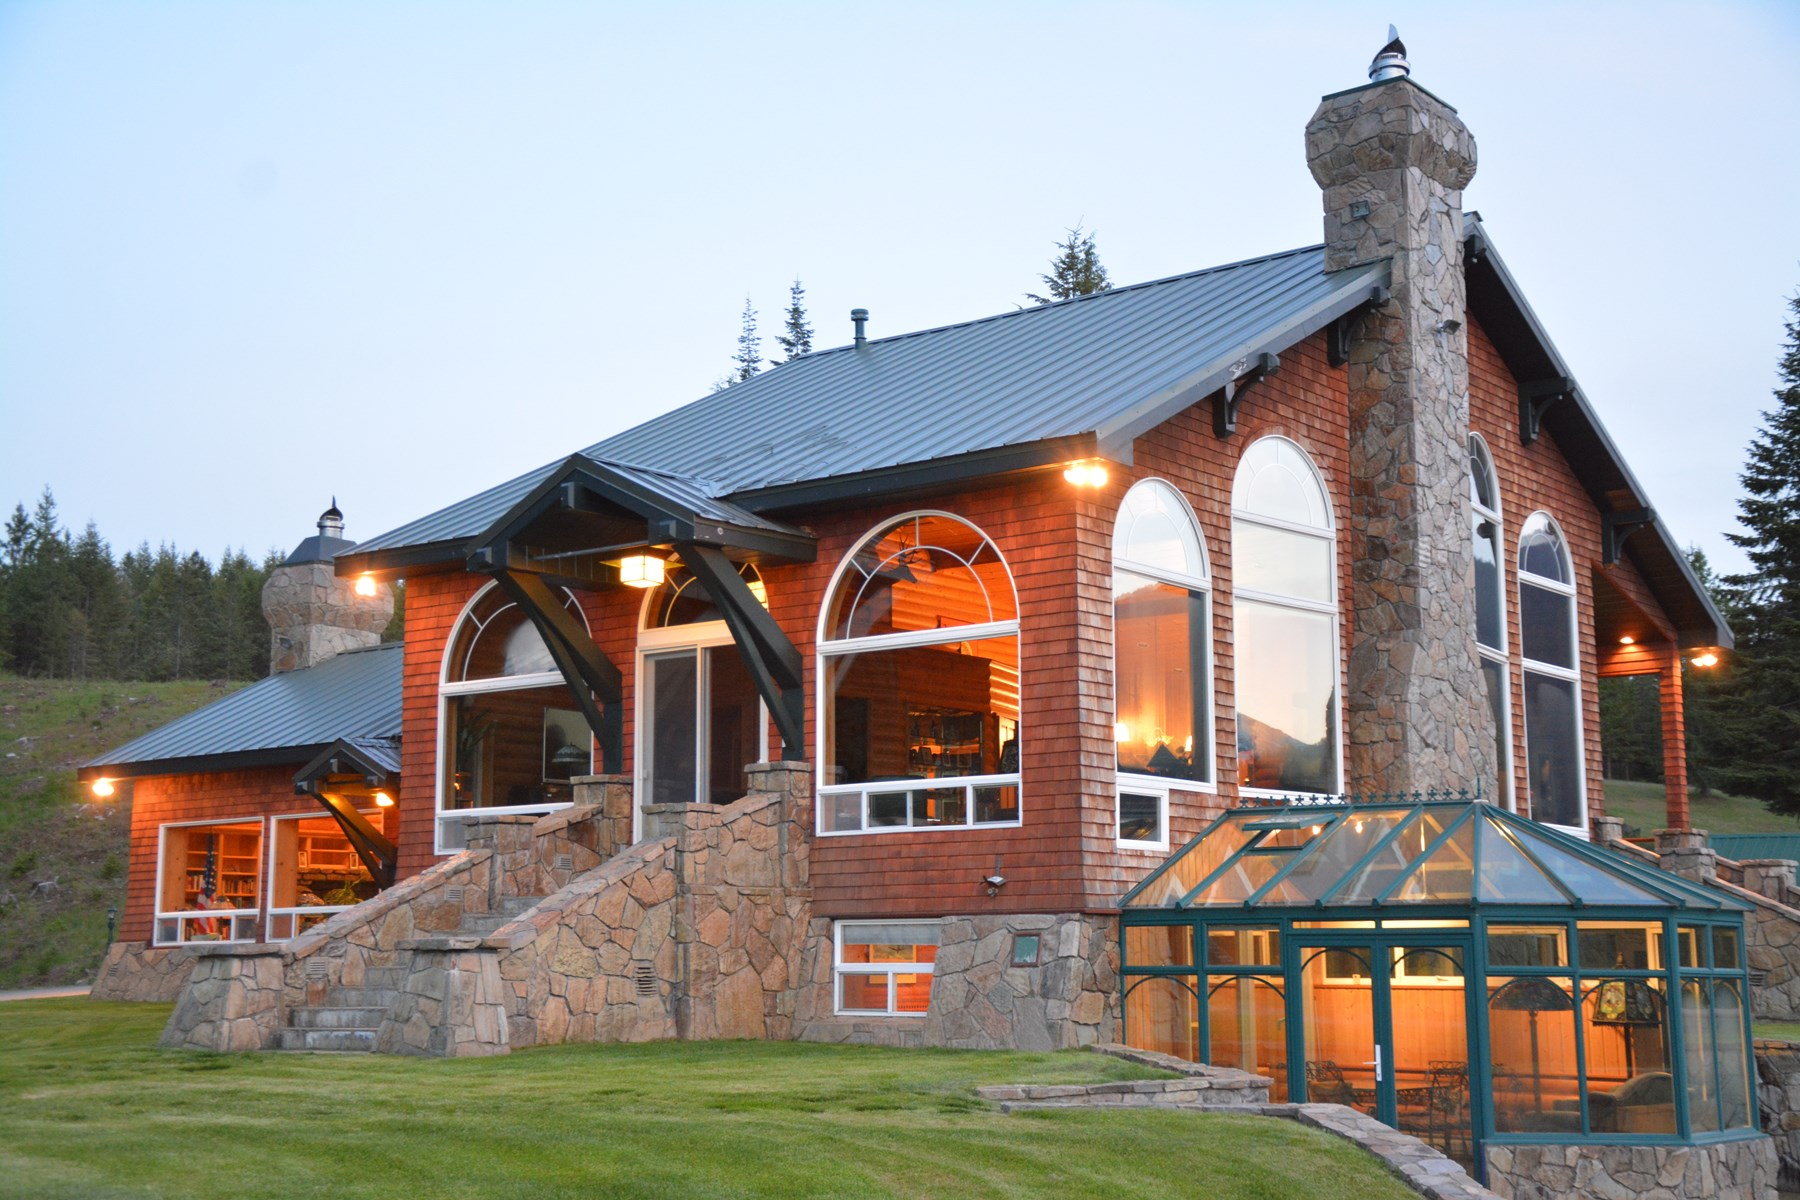 Montana Luxury lakeside Home with guest house for sale